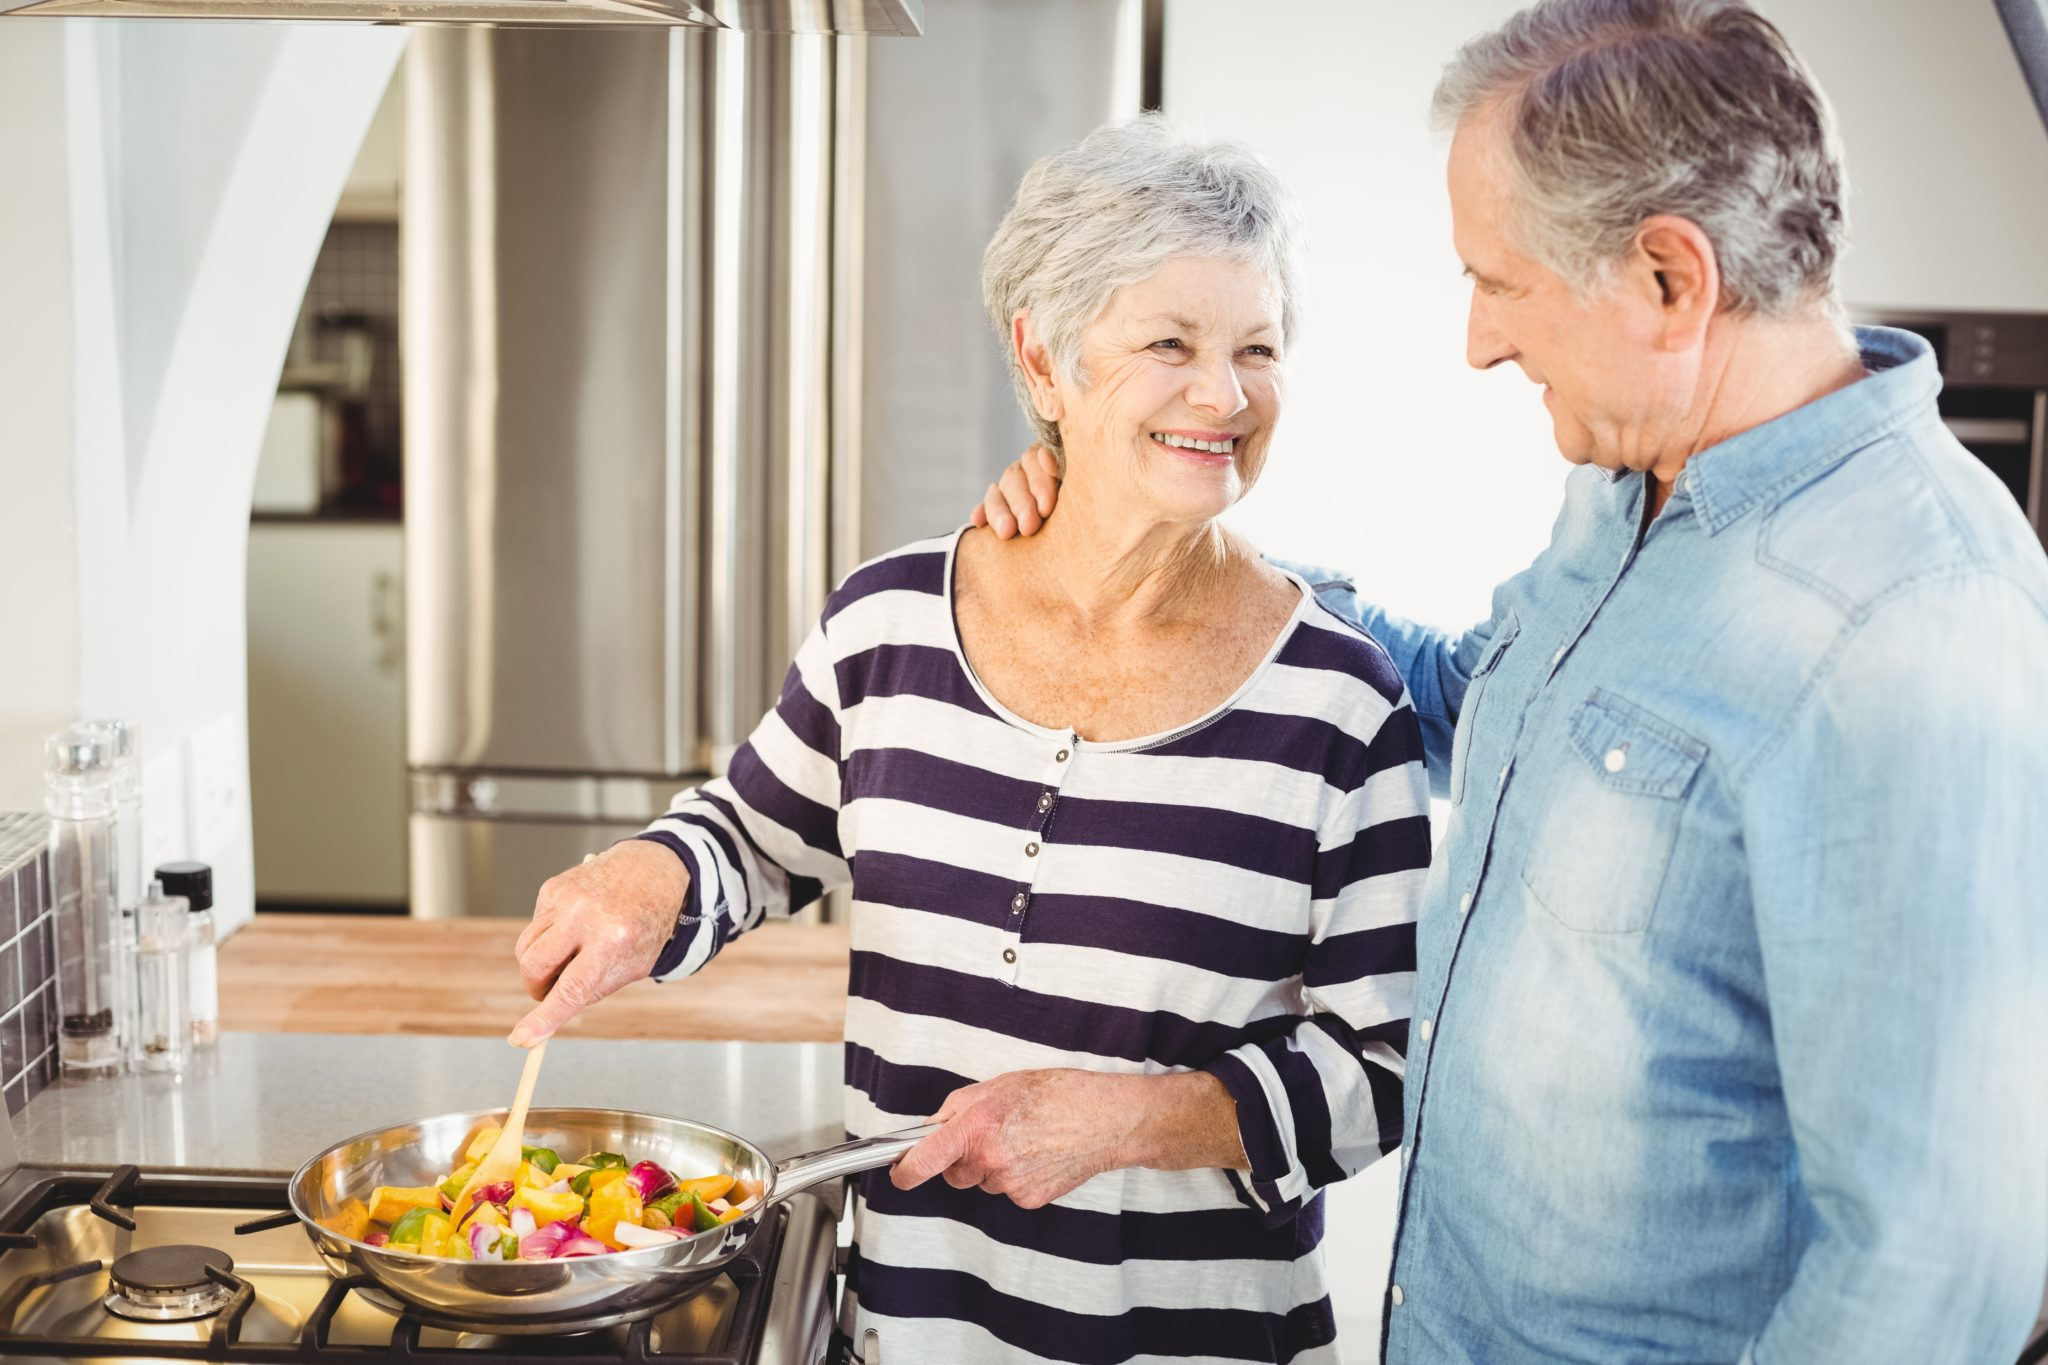 Lifestyle changes to reduce reliance on medication